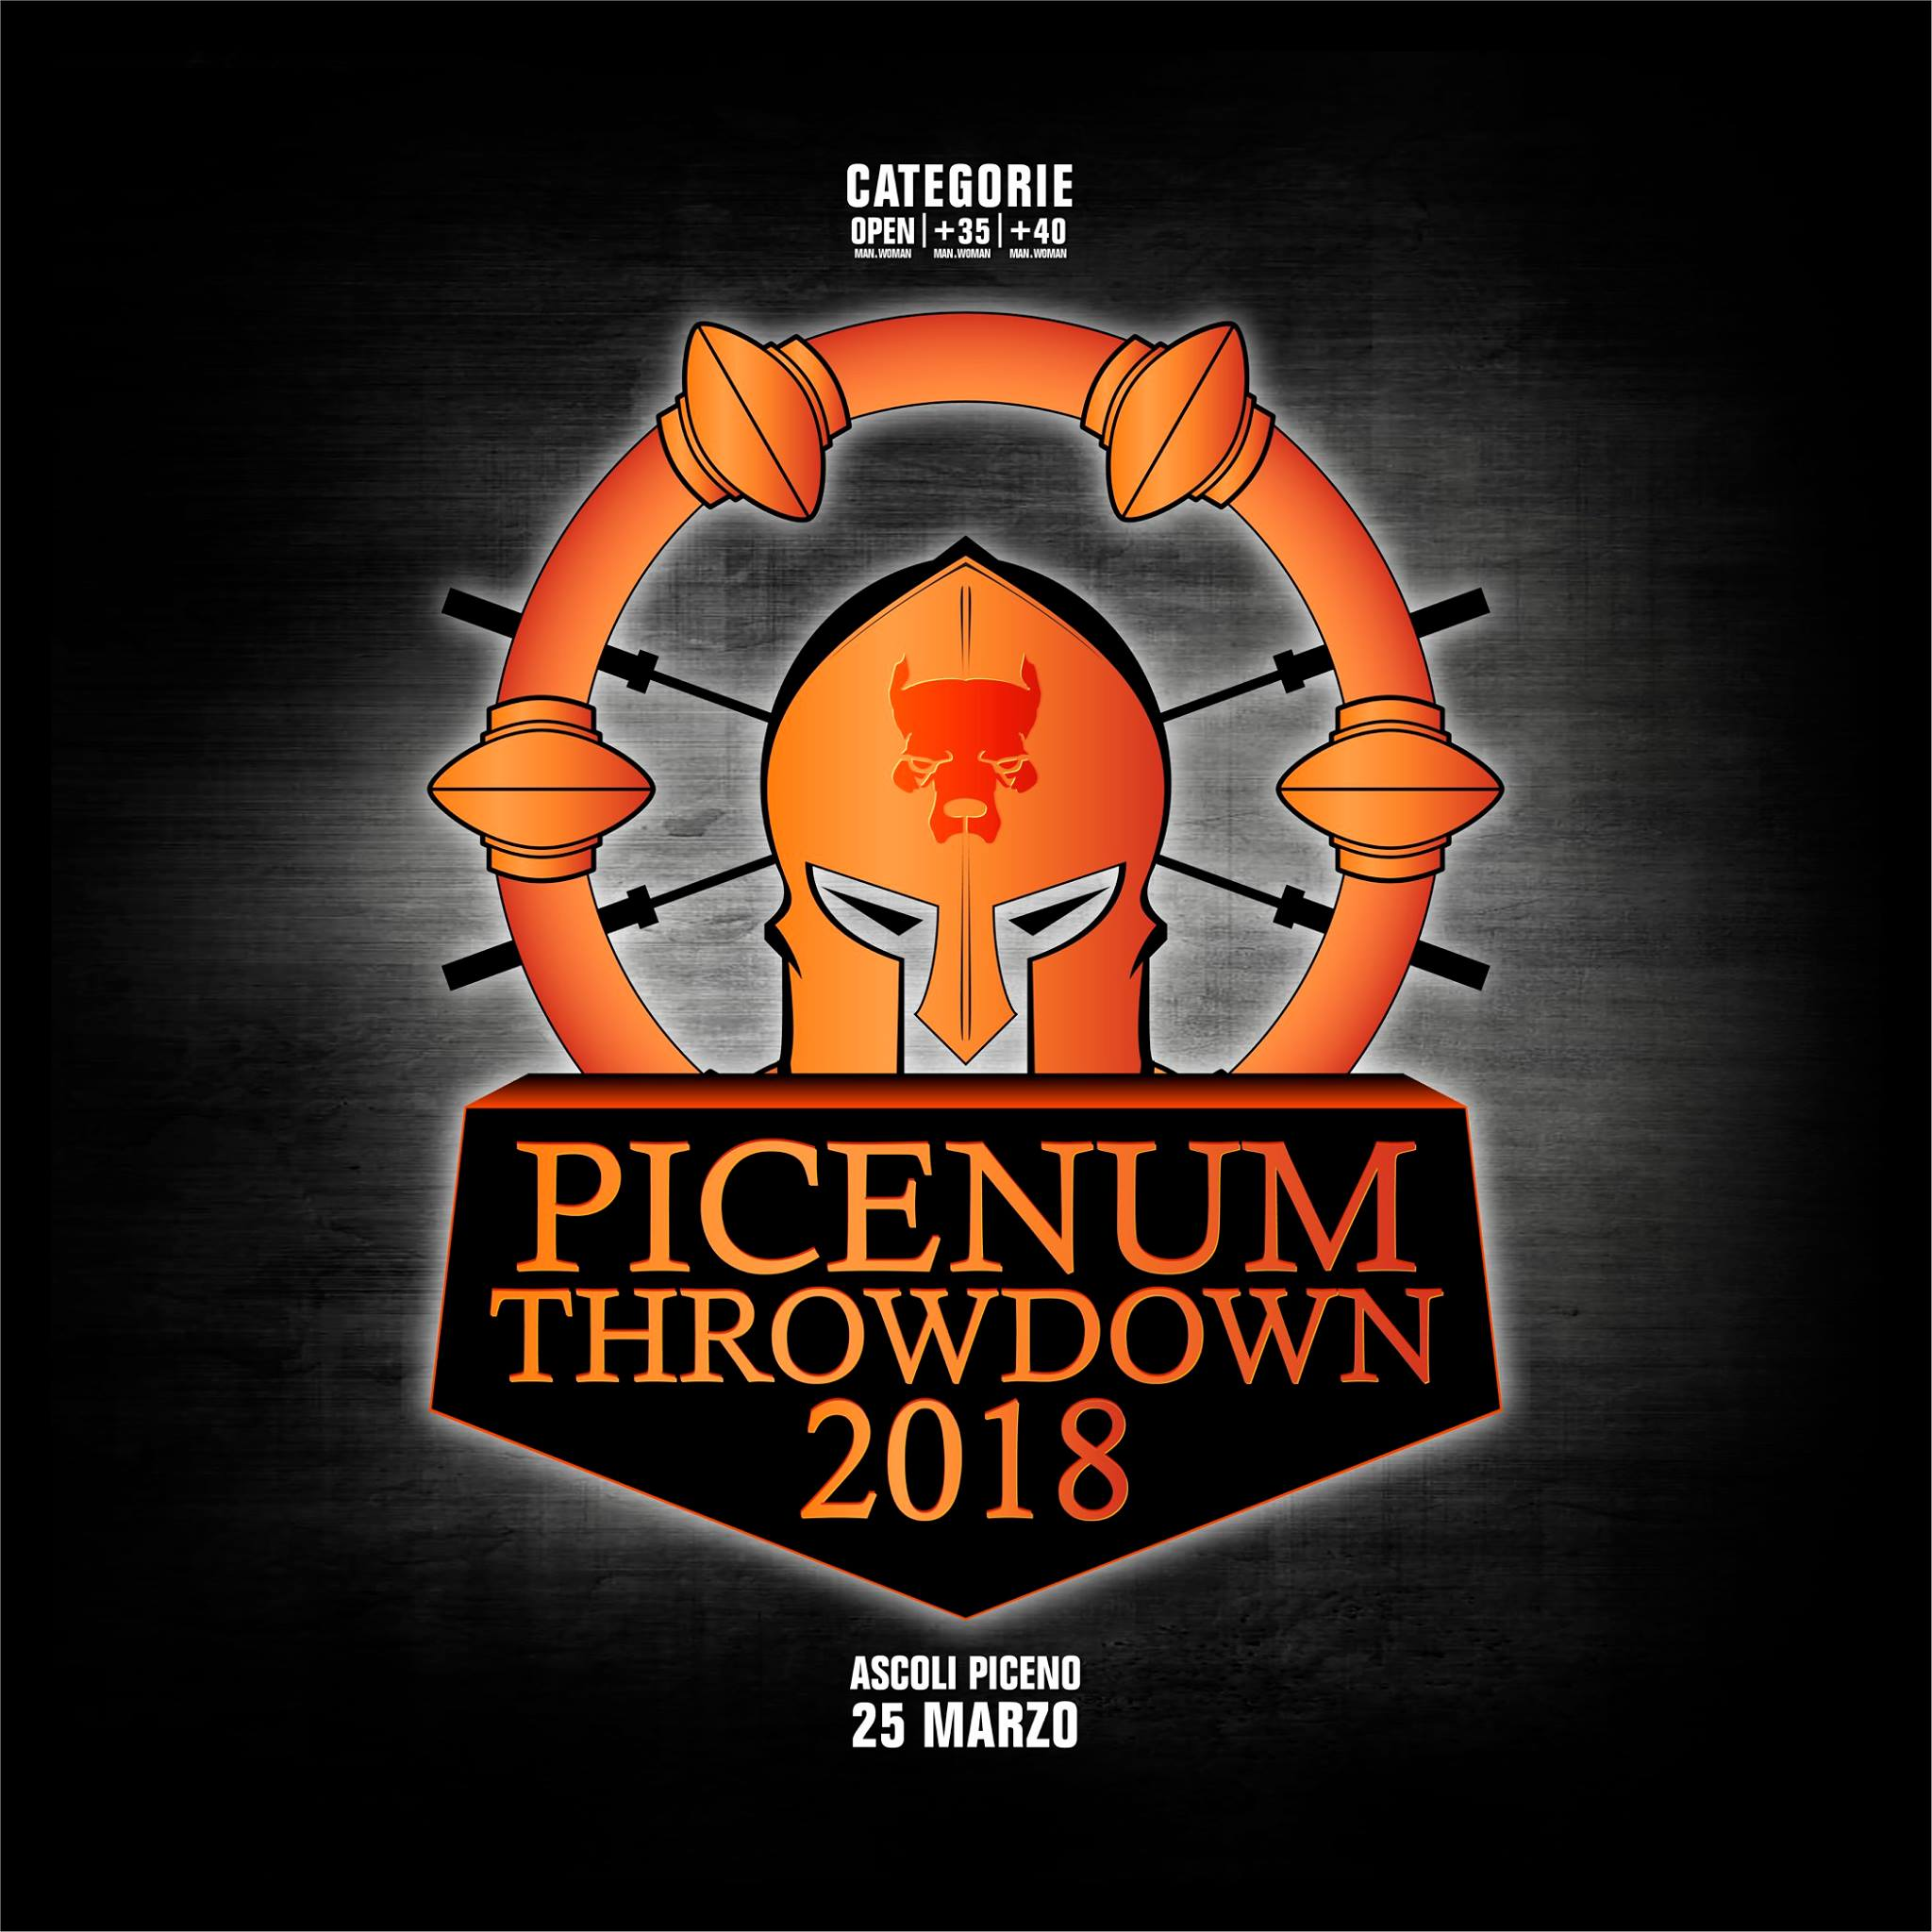 Picenum Throwdown 2018 - Competizione CrossFit Ascoli Piceno Italia | The SunWod